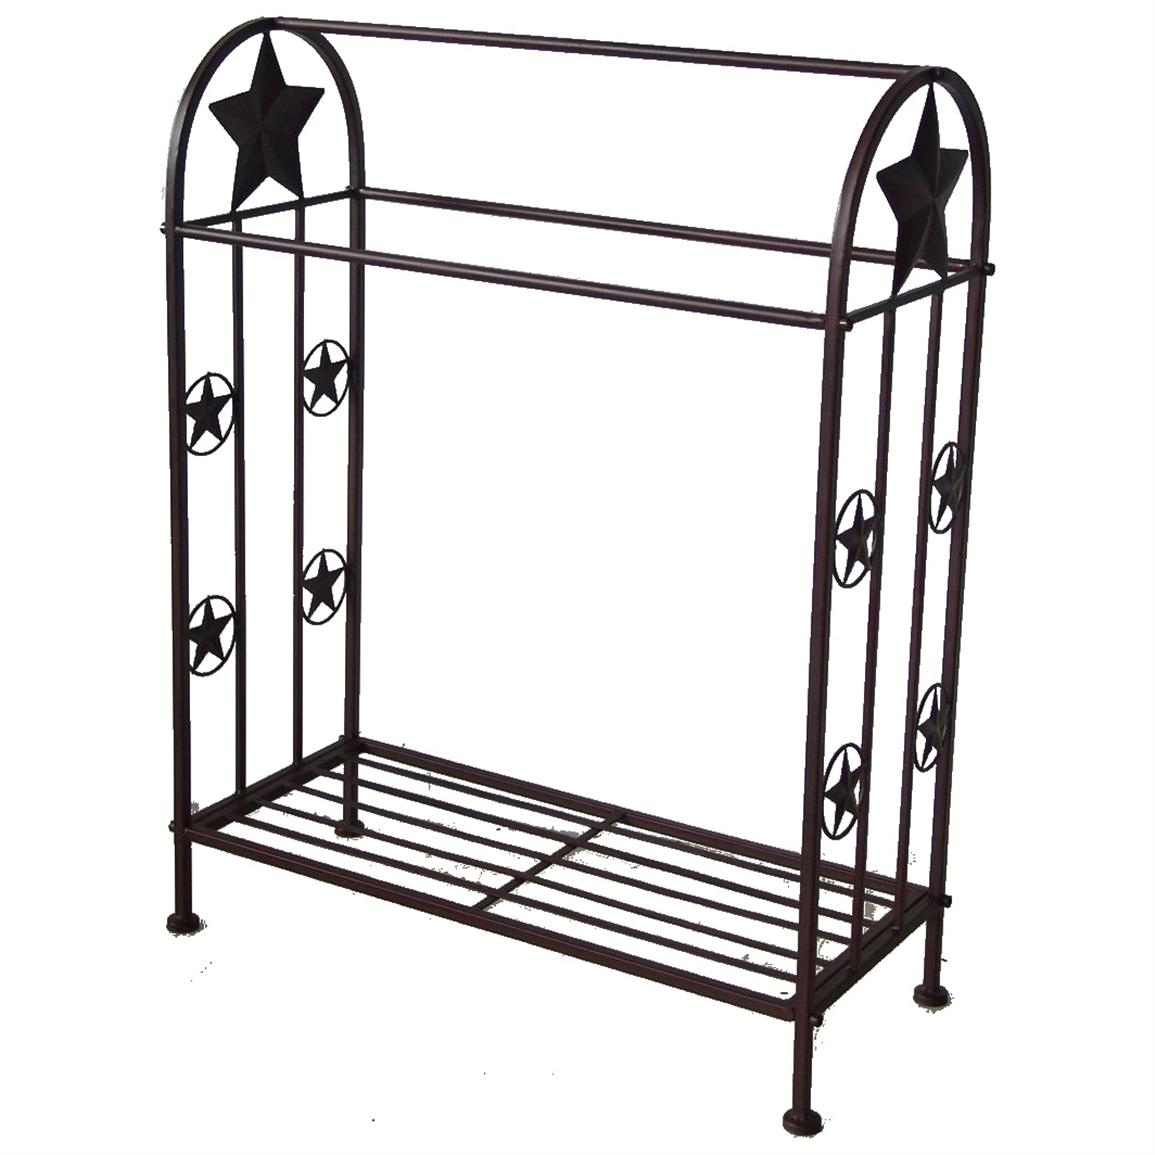 DeLeon Collections Metal Quilt Rack with Star Design